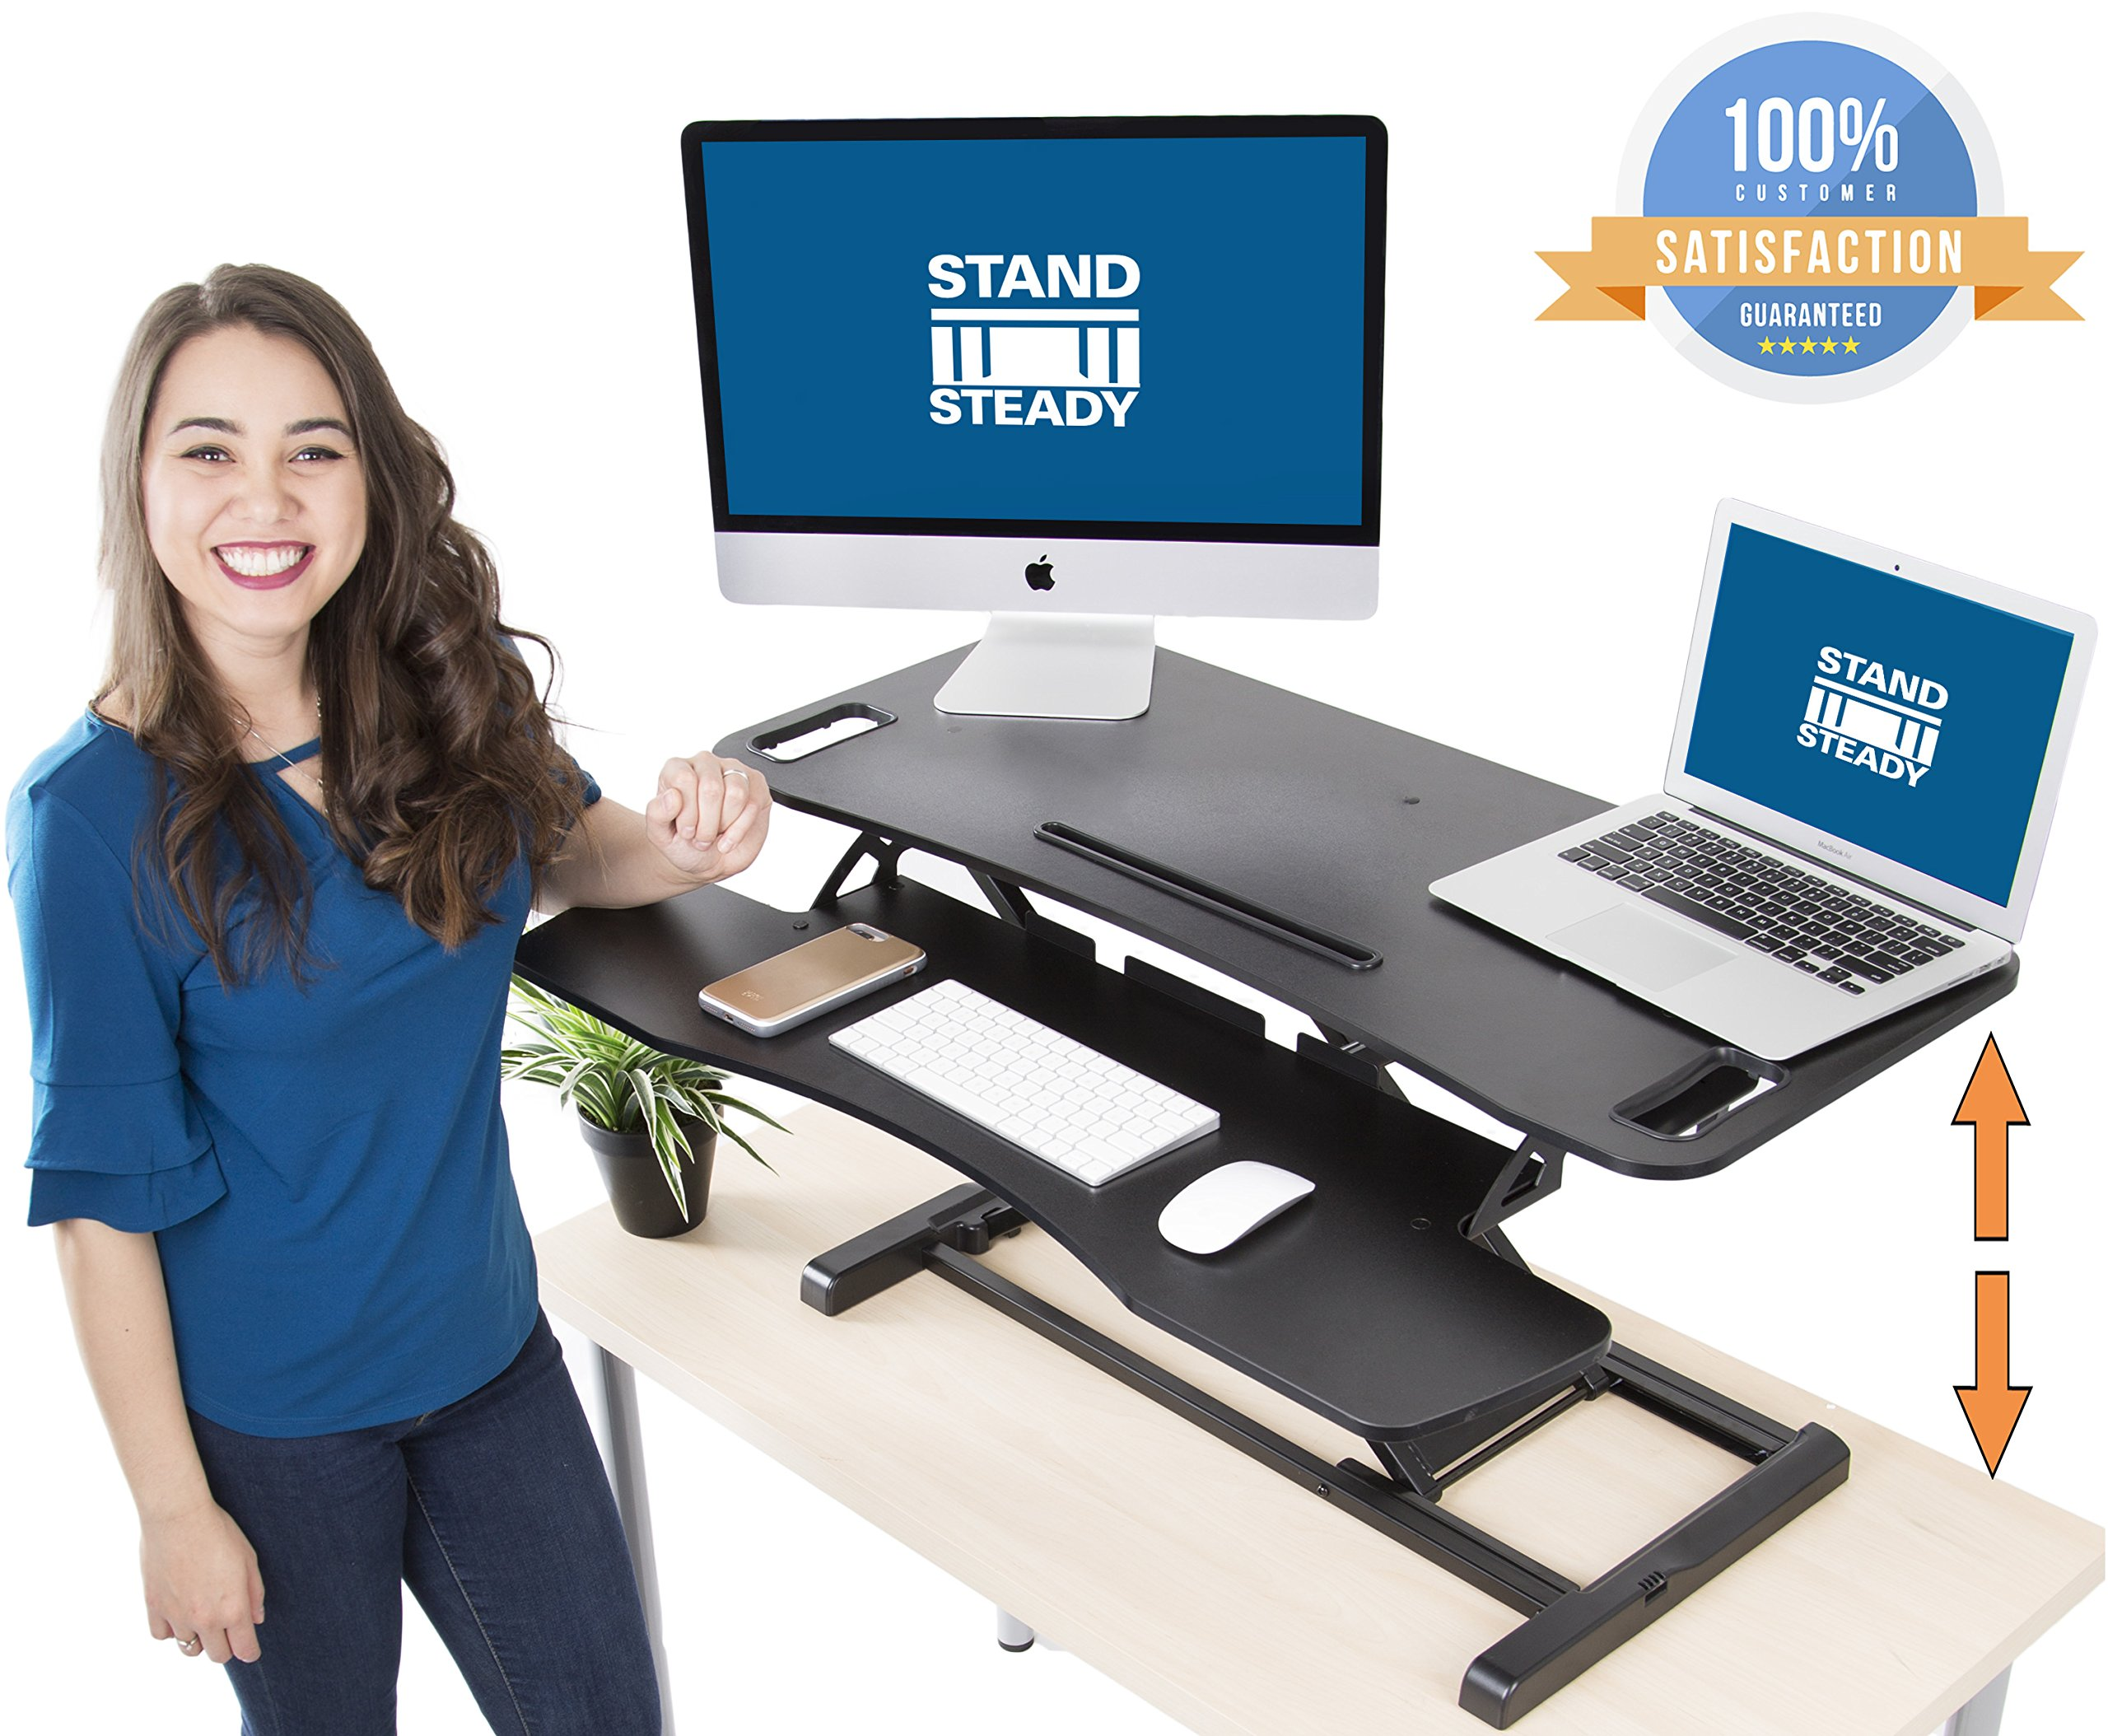 Stand Steady FlexPro Hero Two Level Standing Desk - Easily Sit or Stand in Seconds! Large Work Space w/ Removable Extra Level for Keyboard & Mouse! (Large (37''))